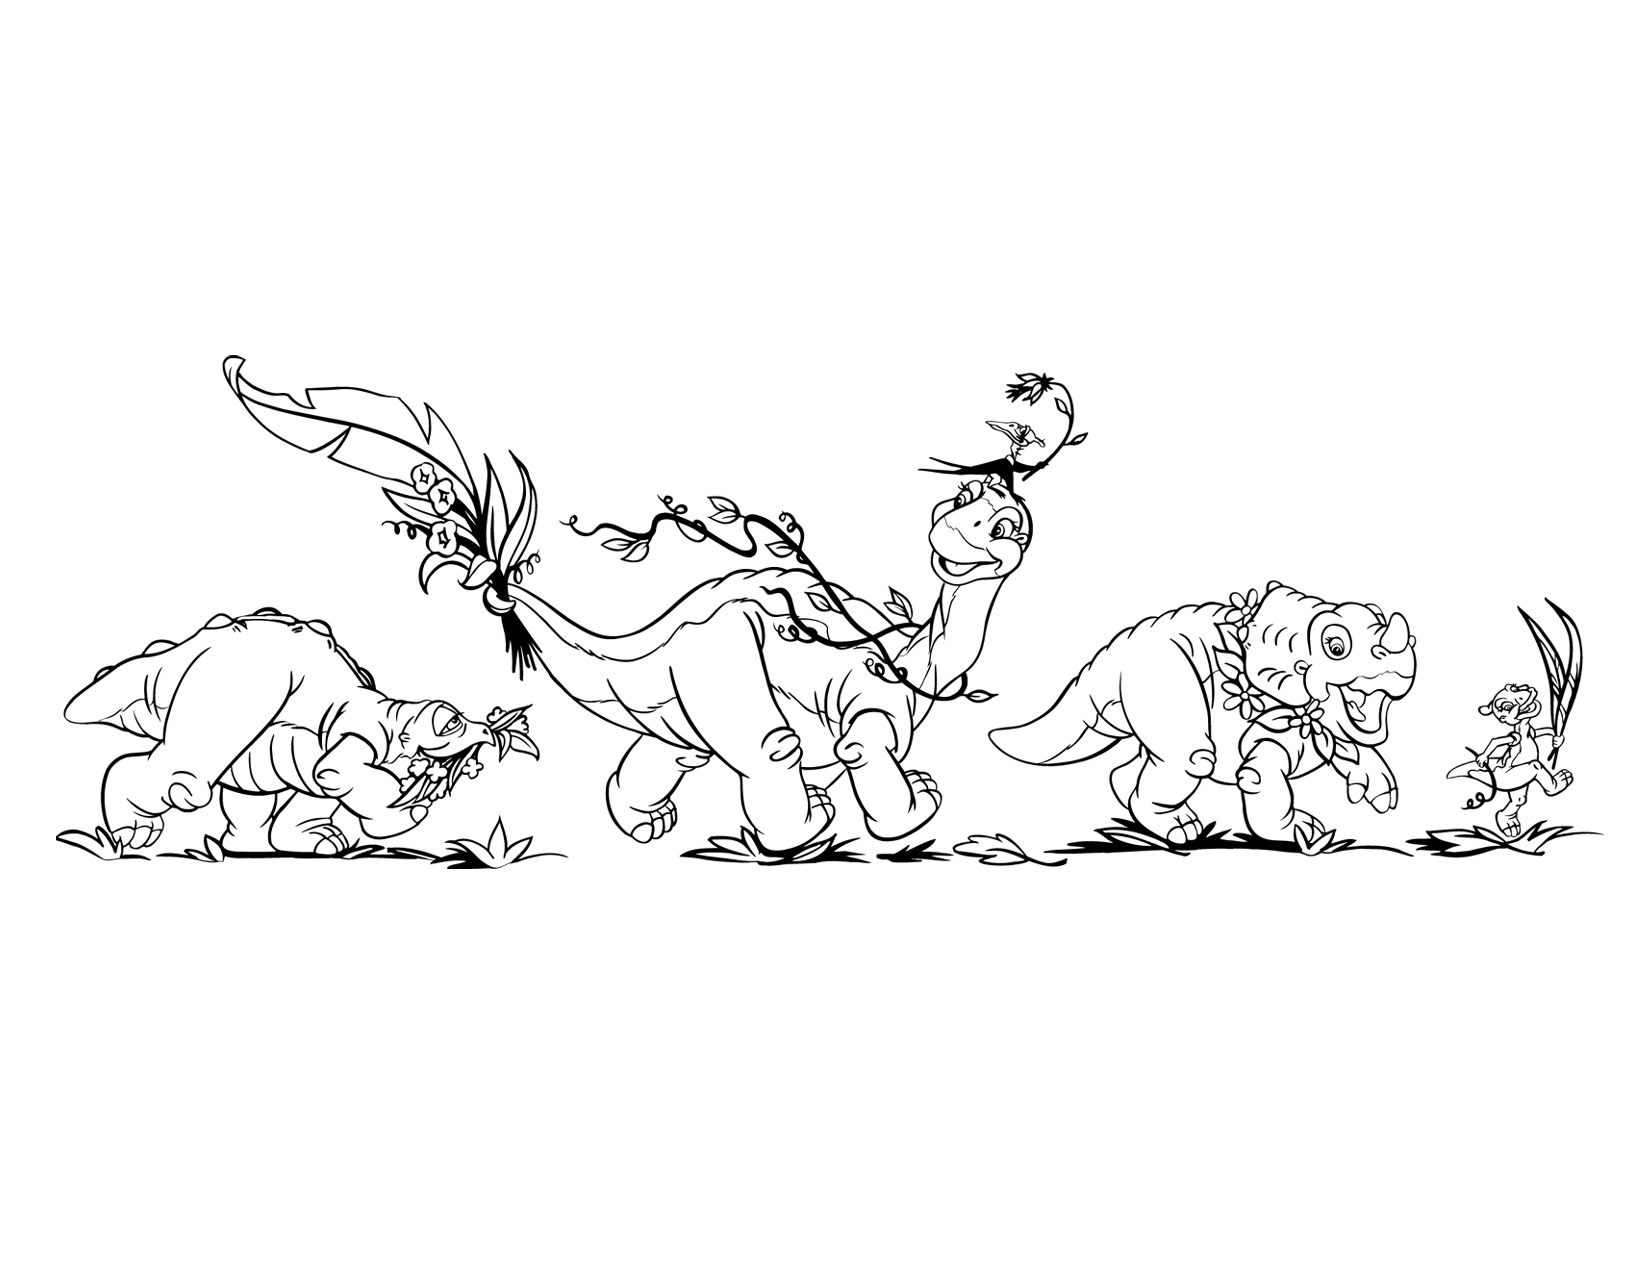 Coloring Pages The Land Before Time Coloring Pages image coloring page 4 movie 5 png land before time wiki filecoloring png